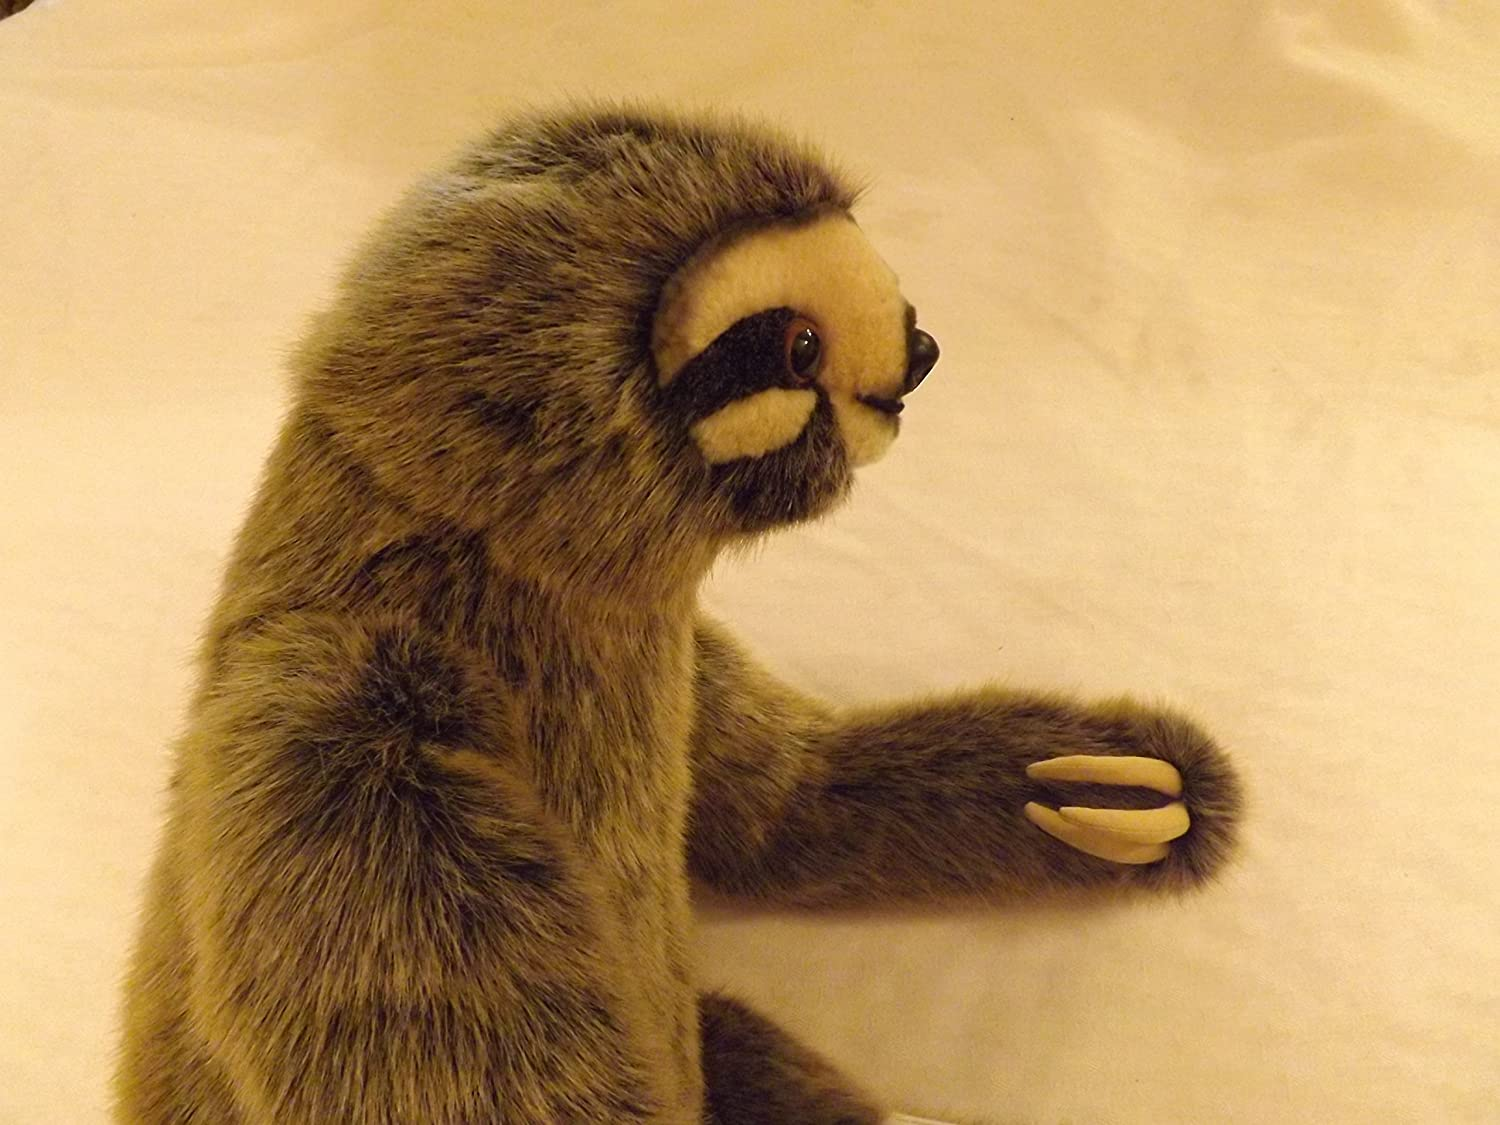 Large Stuffed Sloth 24 Realistic Stuffed Animal Sloth This Place is a Zoo